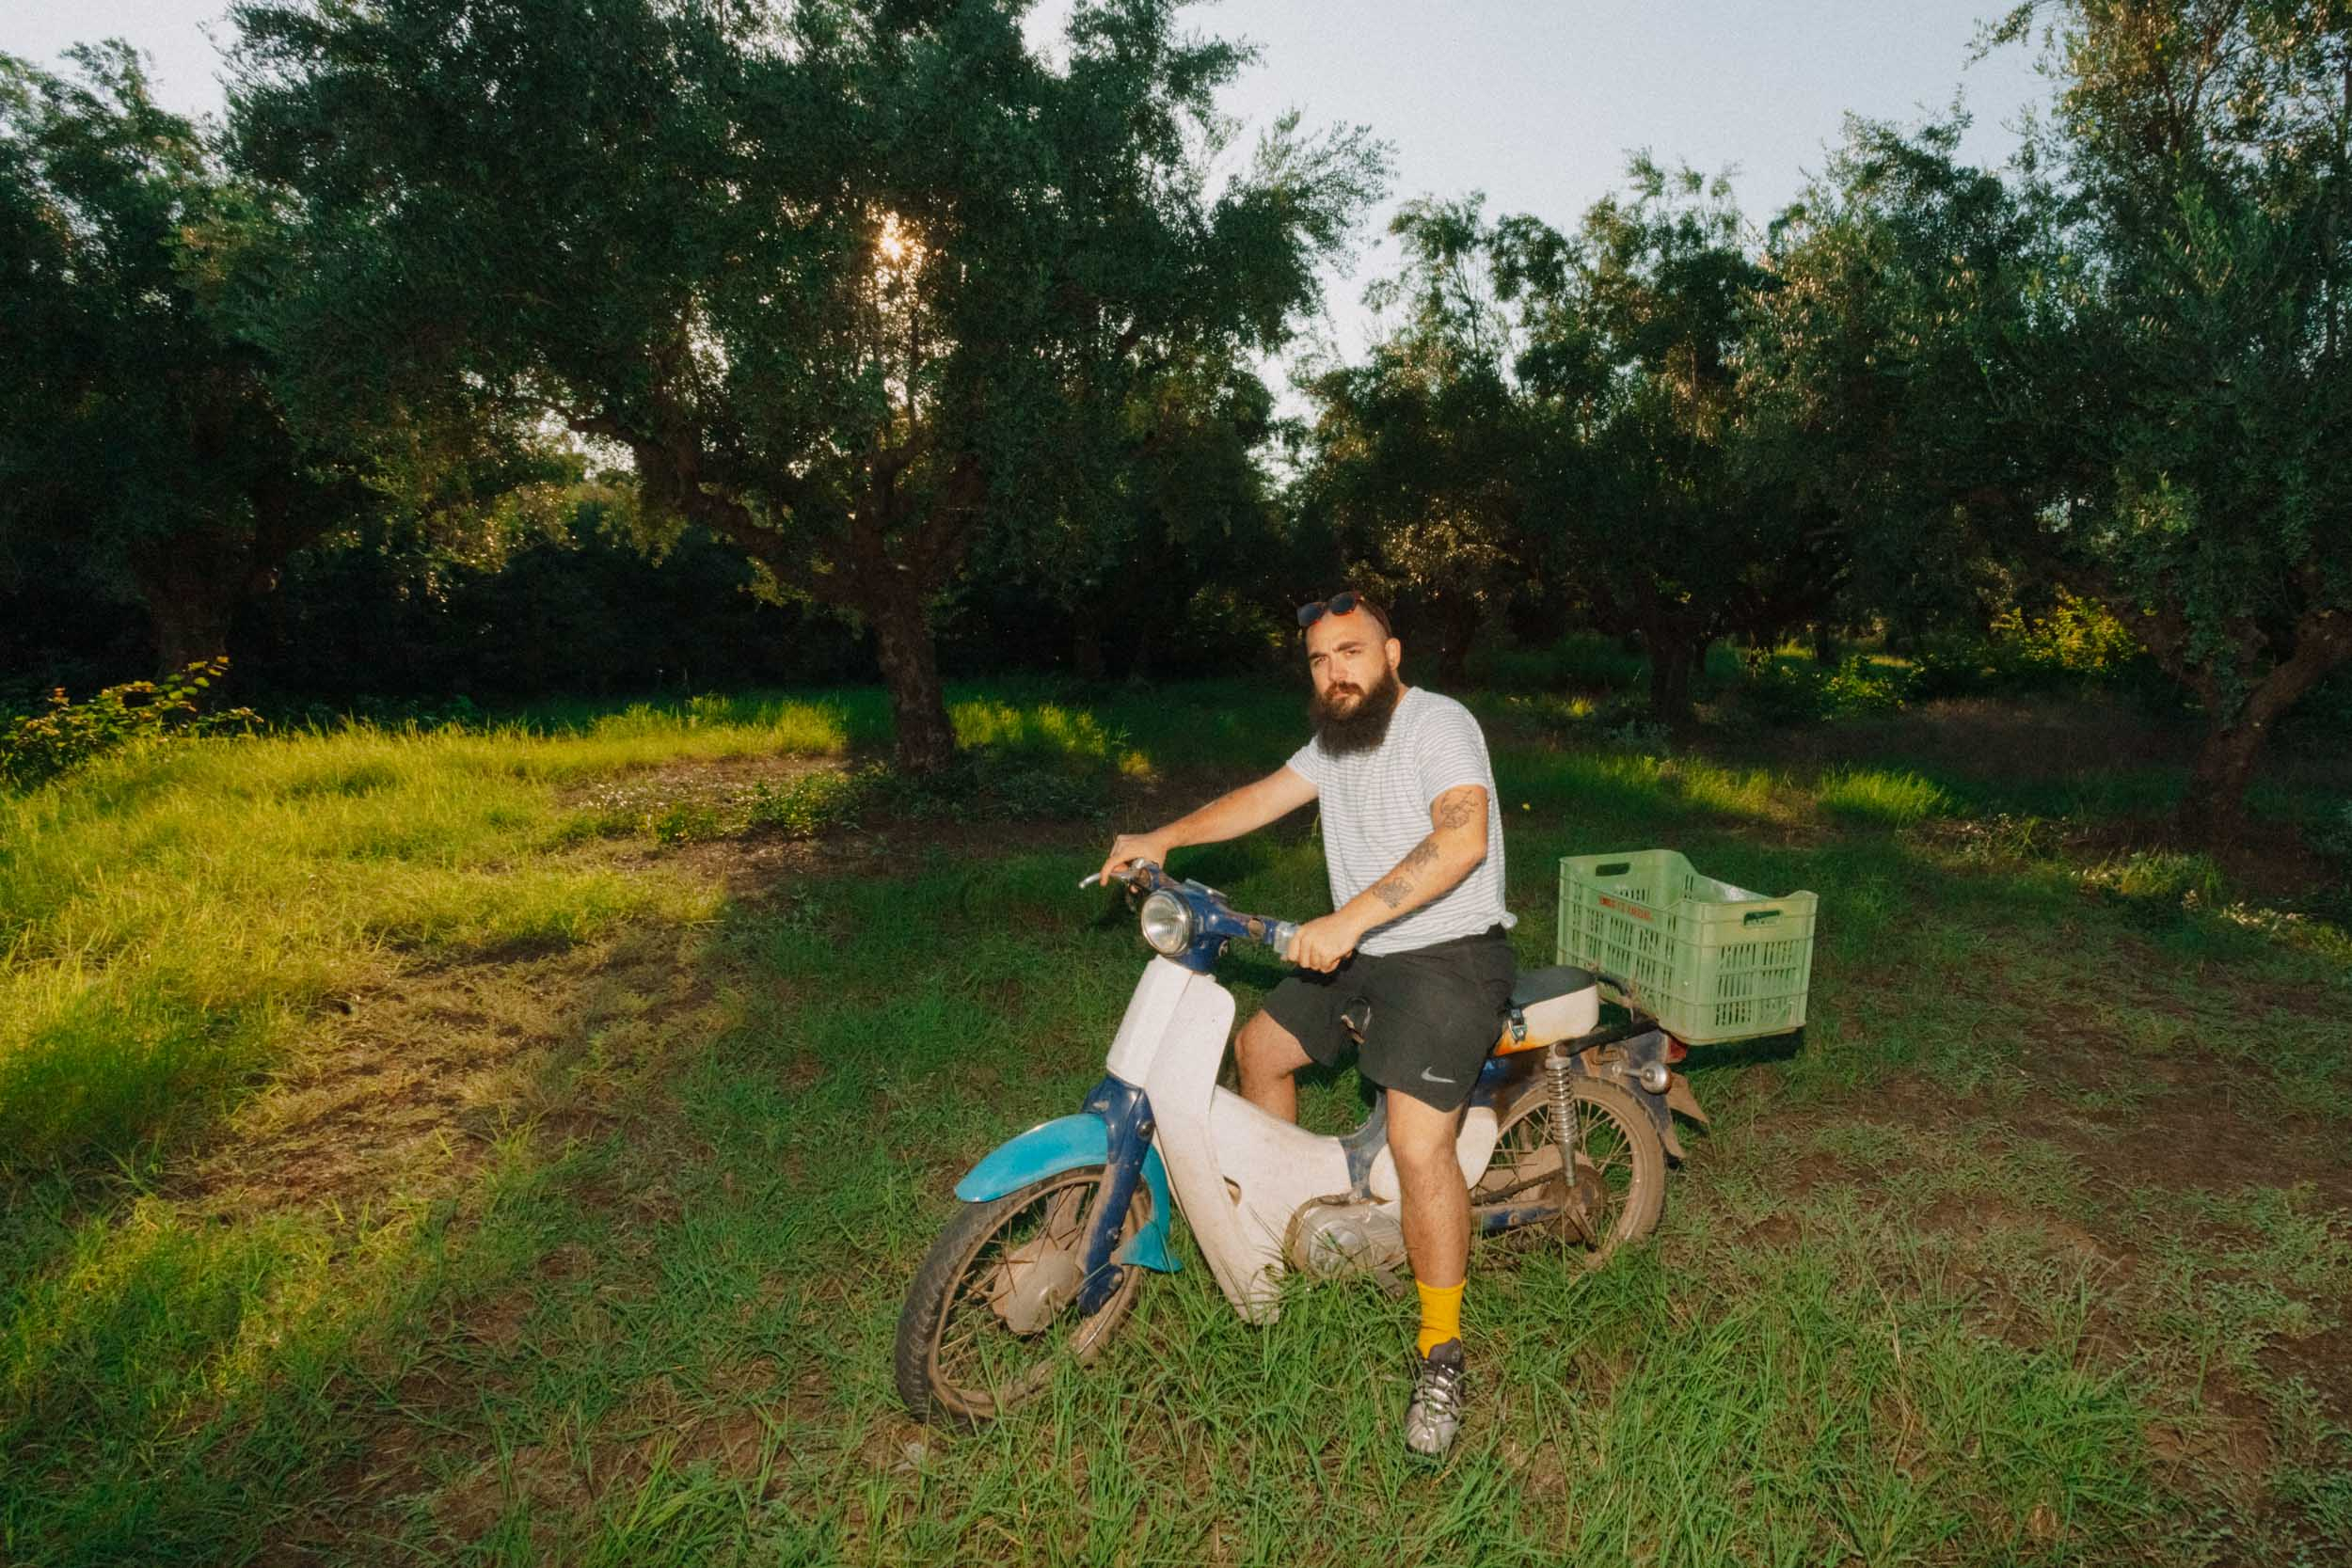 Simone on a moped in the olive grove.